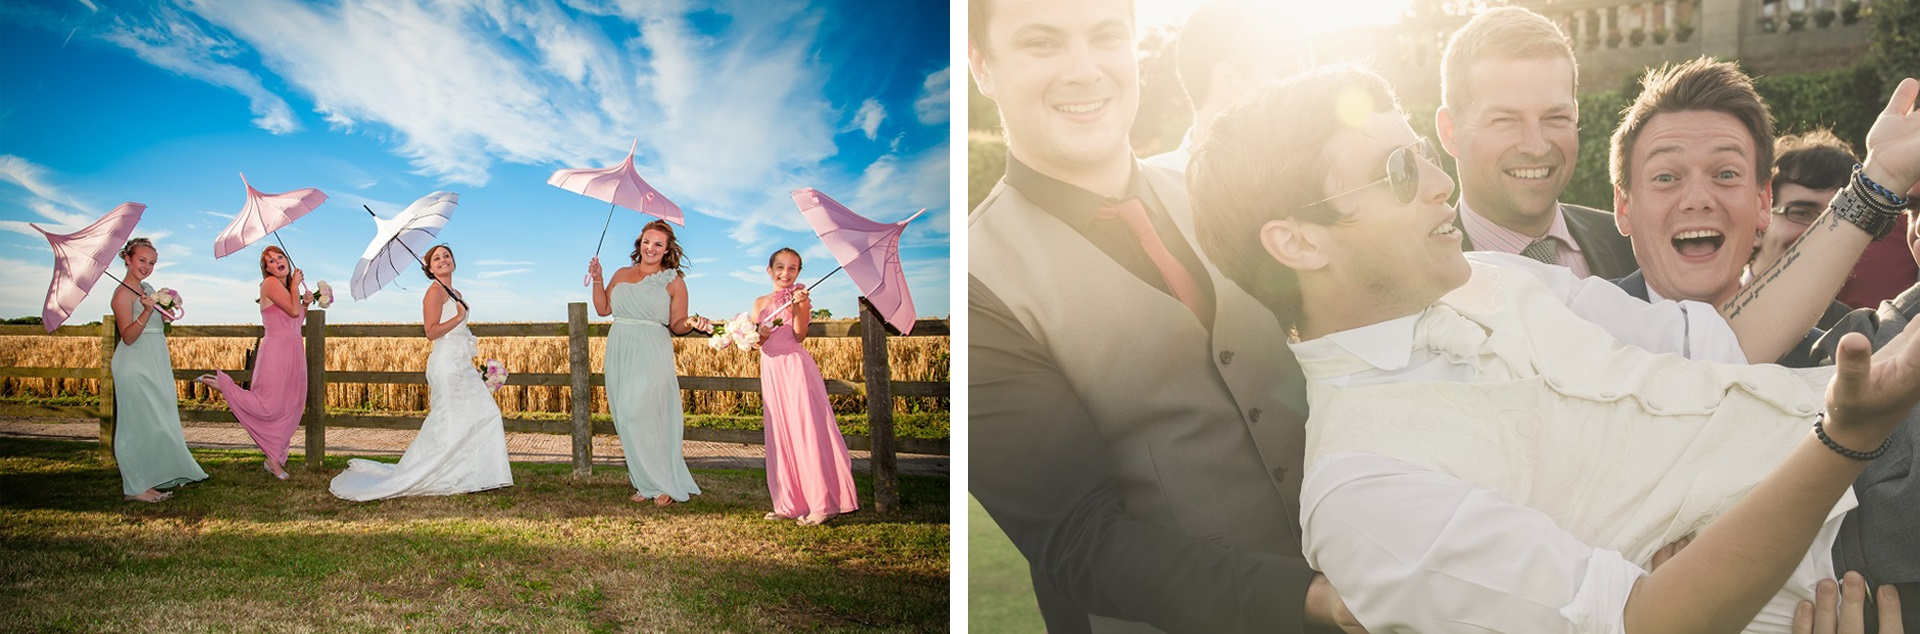 Chris Fossey Photography-warwickshire-oxfordshire-gloucestershire-worcestershire-stratford-upon-avon-wedding-commercial-photographer-uk-based 7